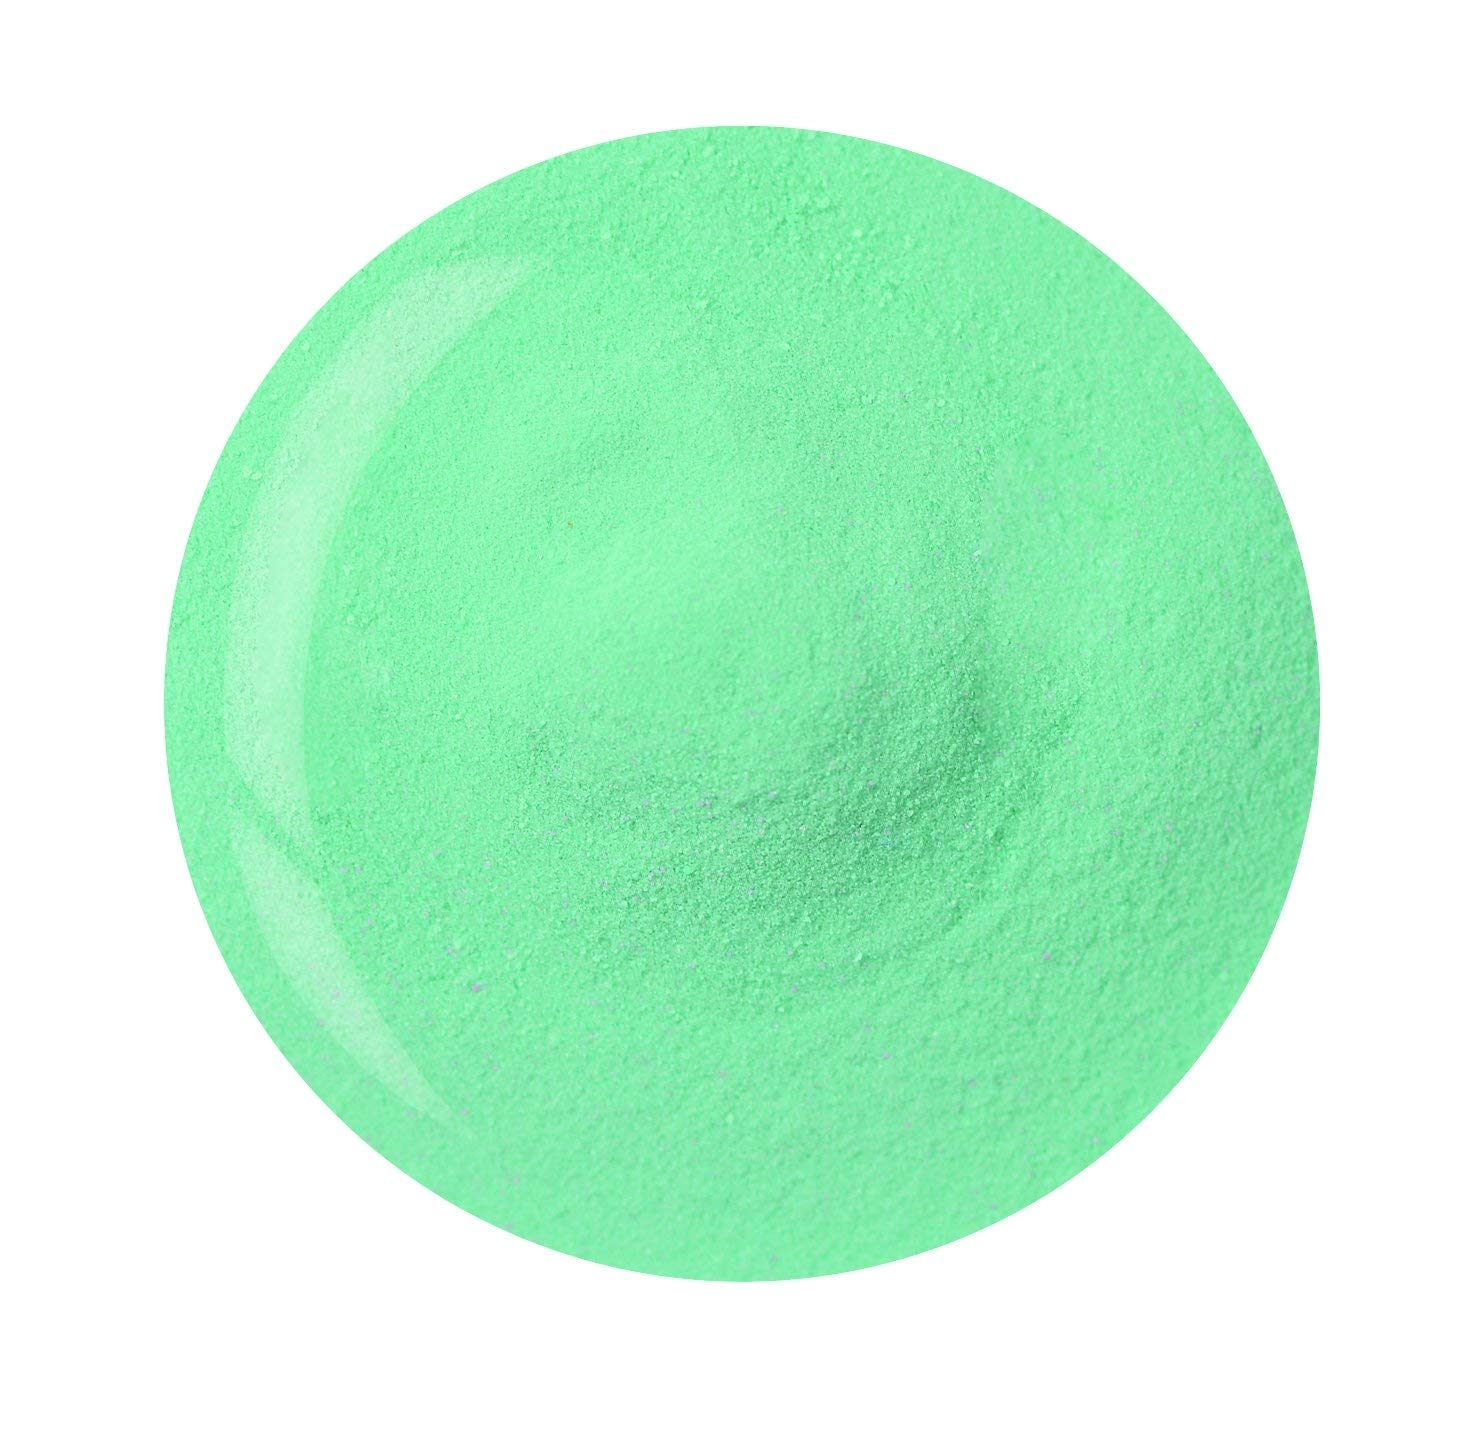 Cuccio Coloured Acrylic Powder - 1.6oz (45g) Sour Apple Green